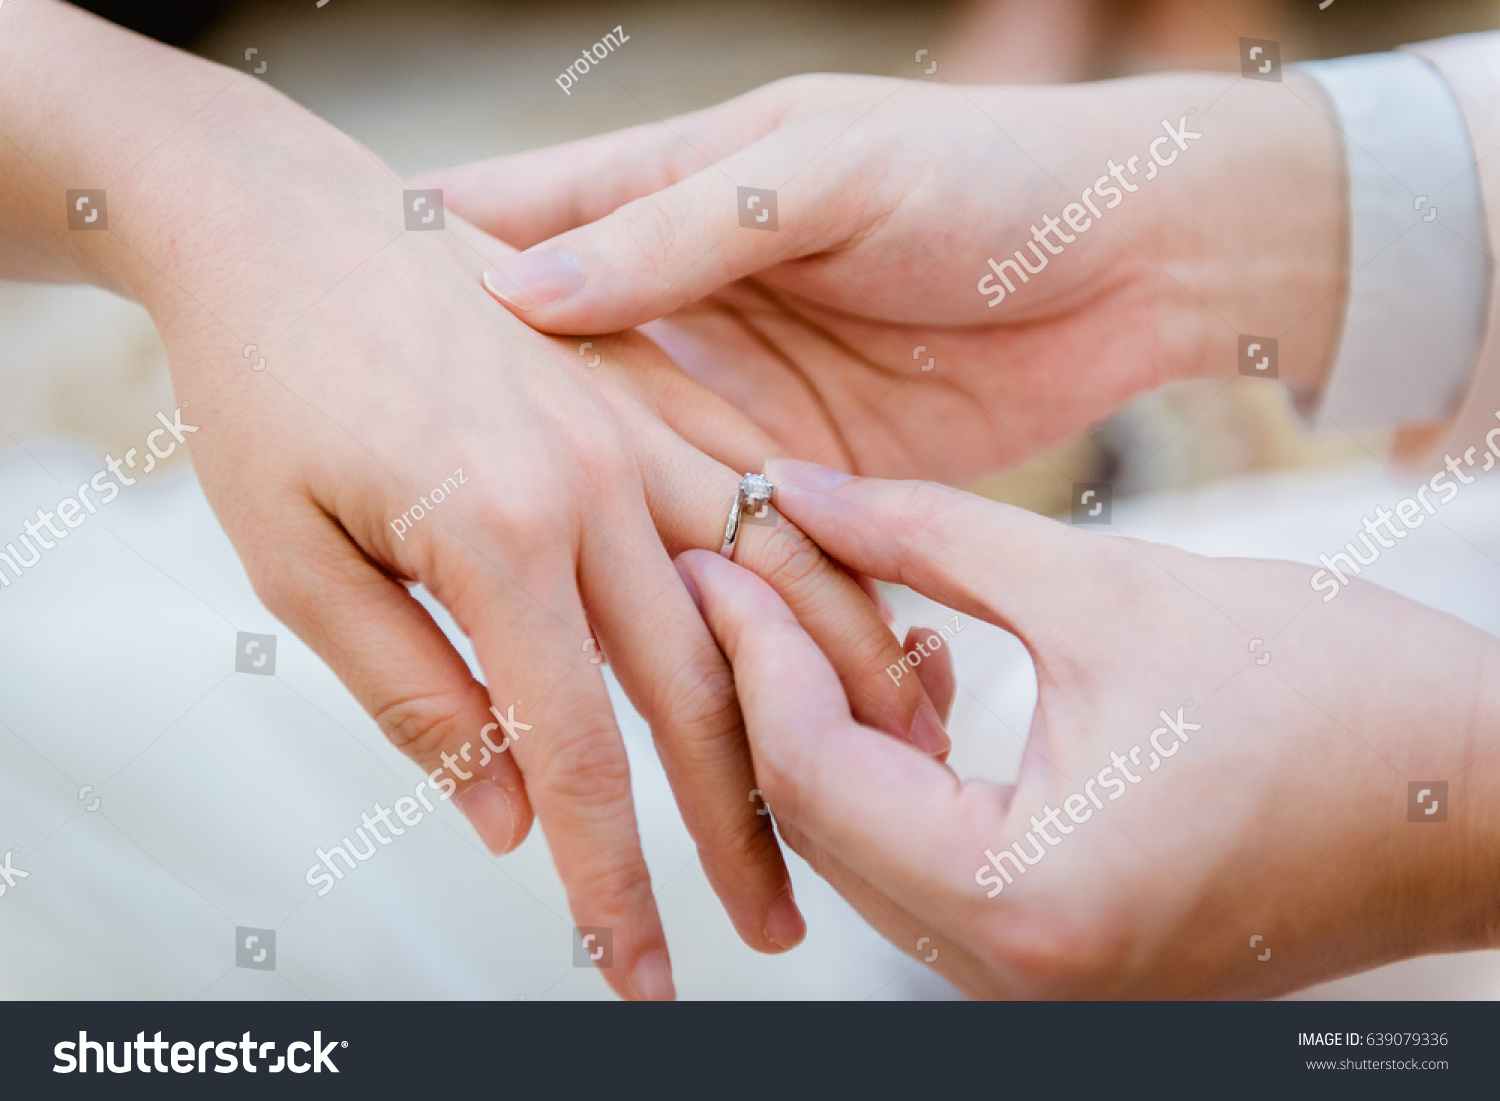 Wearing Wedding Ring Ceremony Stock Photo (100% Legal Protection ...